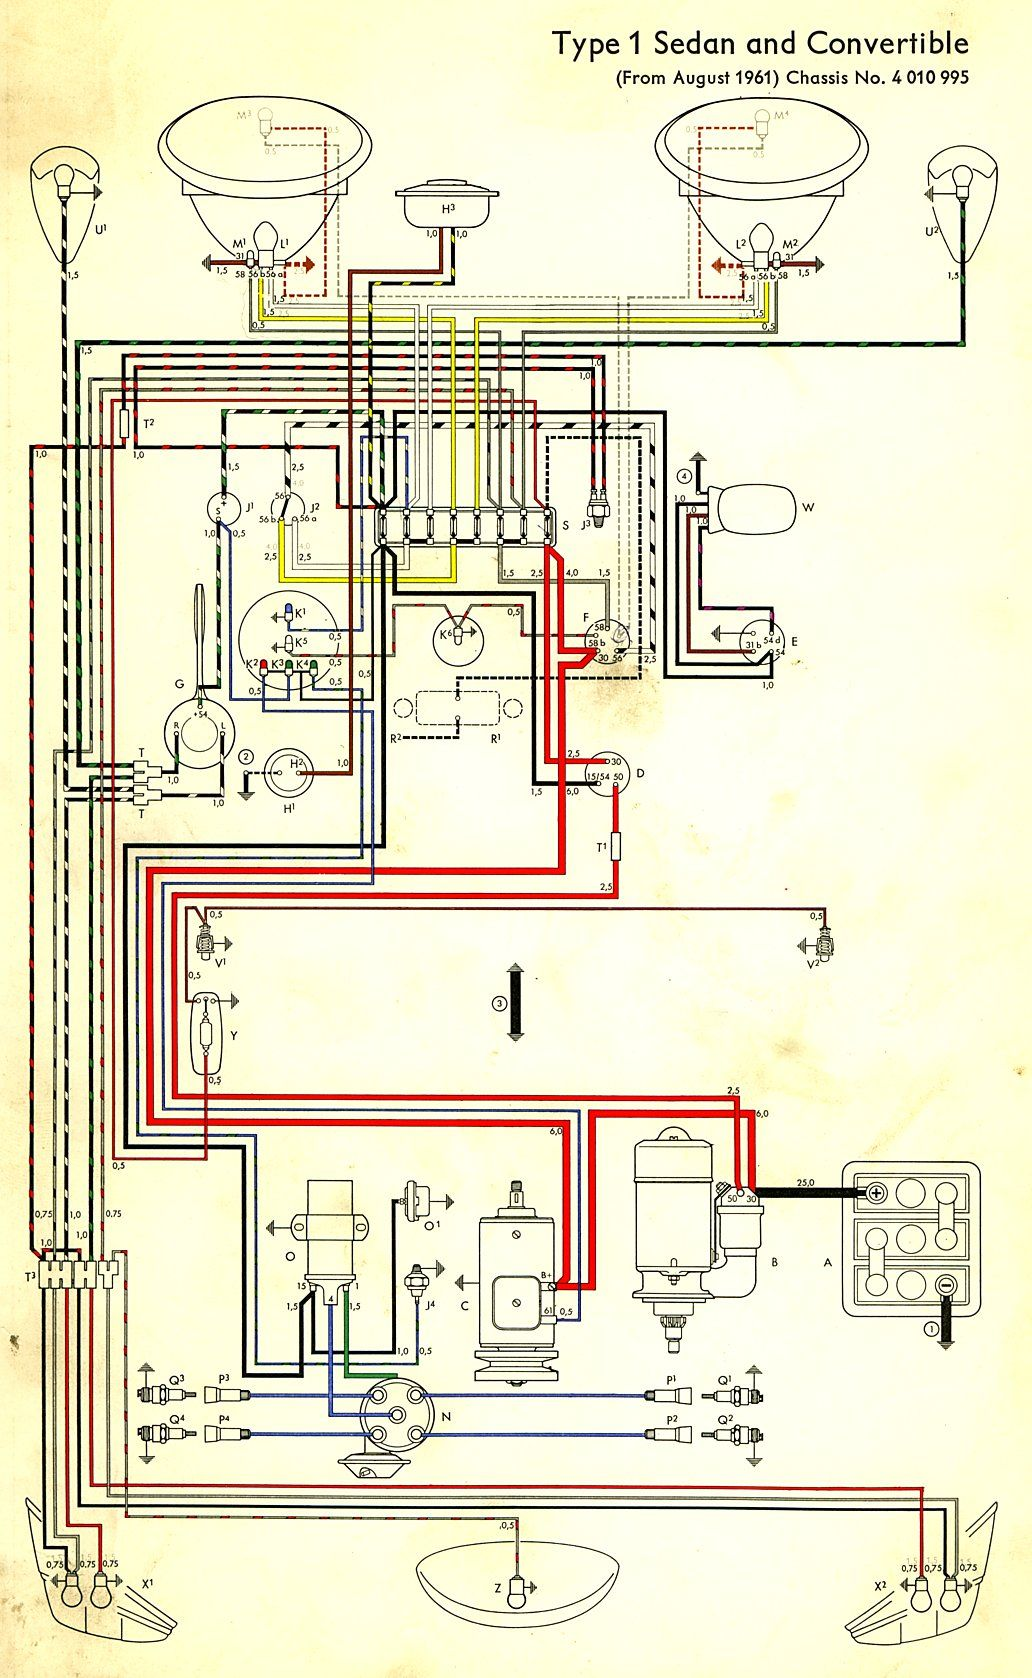 1964 vw wiring diagram wiring diagram online 1967 VW Fuse Box wiring diagram in color 1964 vw bug, beetle, convertible the samba 1964 vw wiring diagram 1964 vw wiring diagram